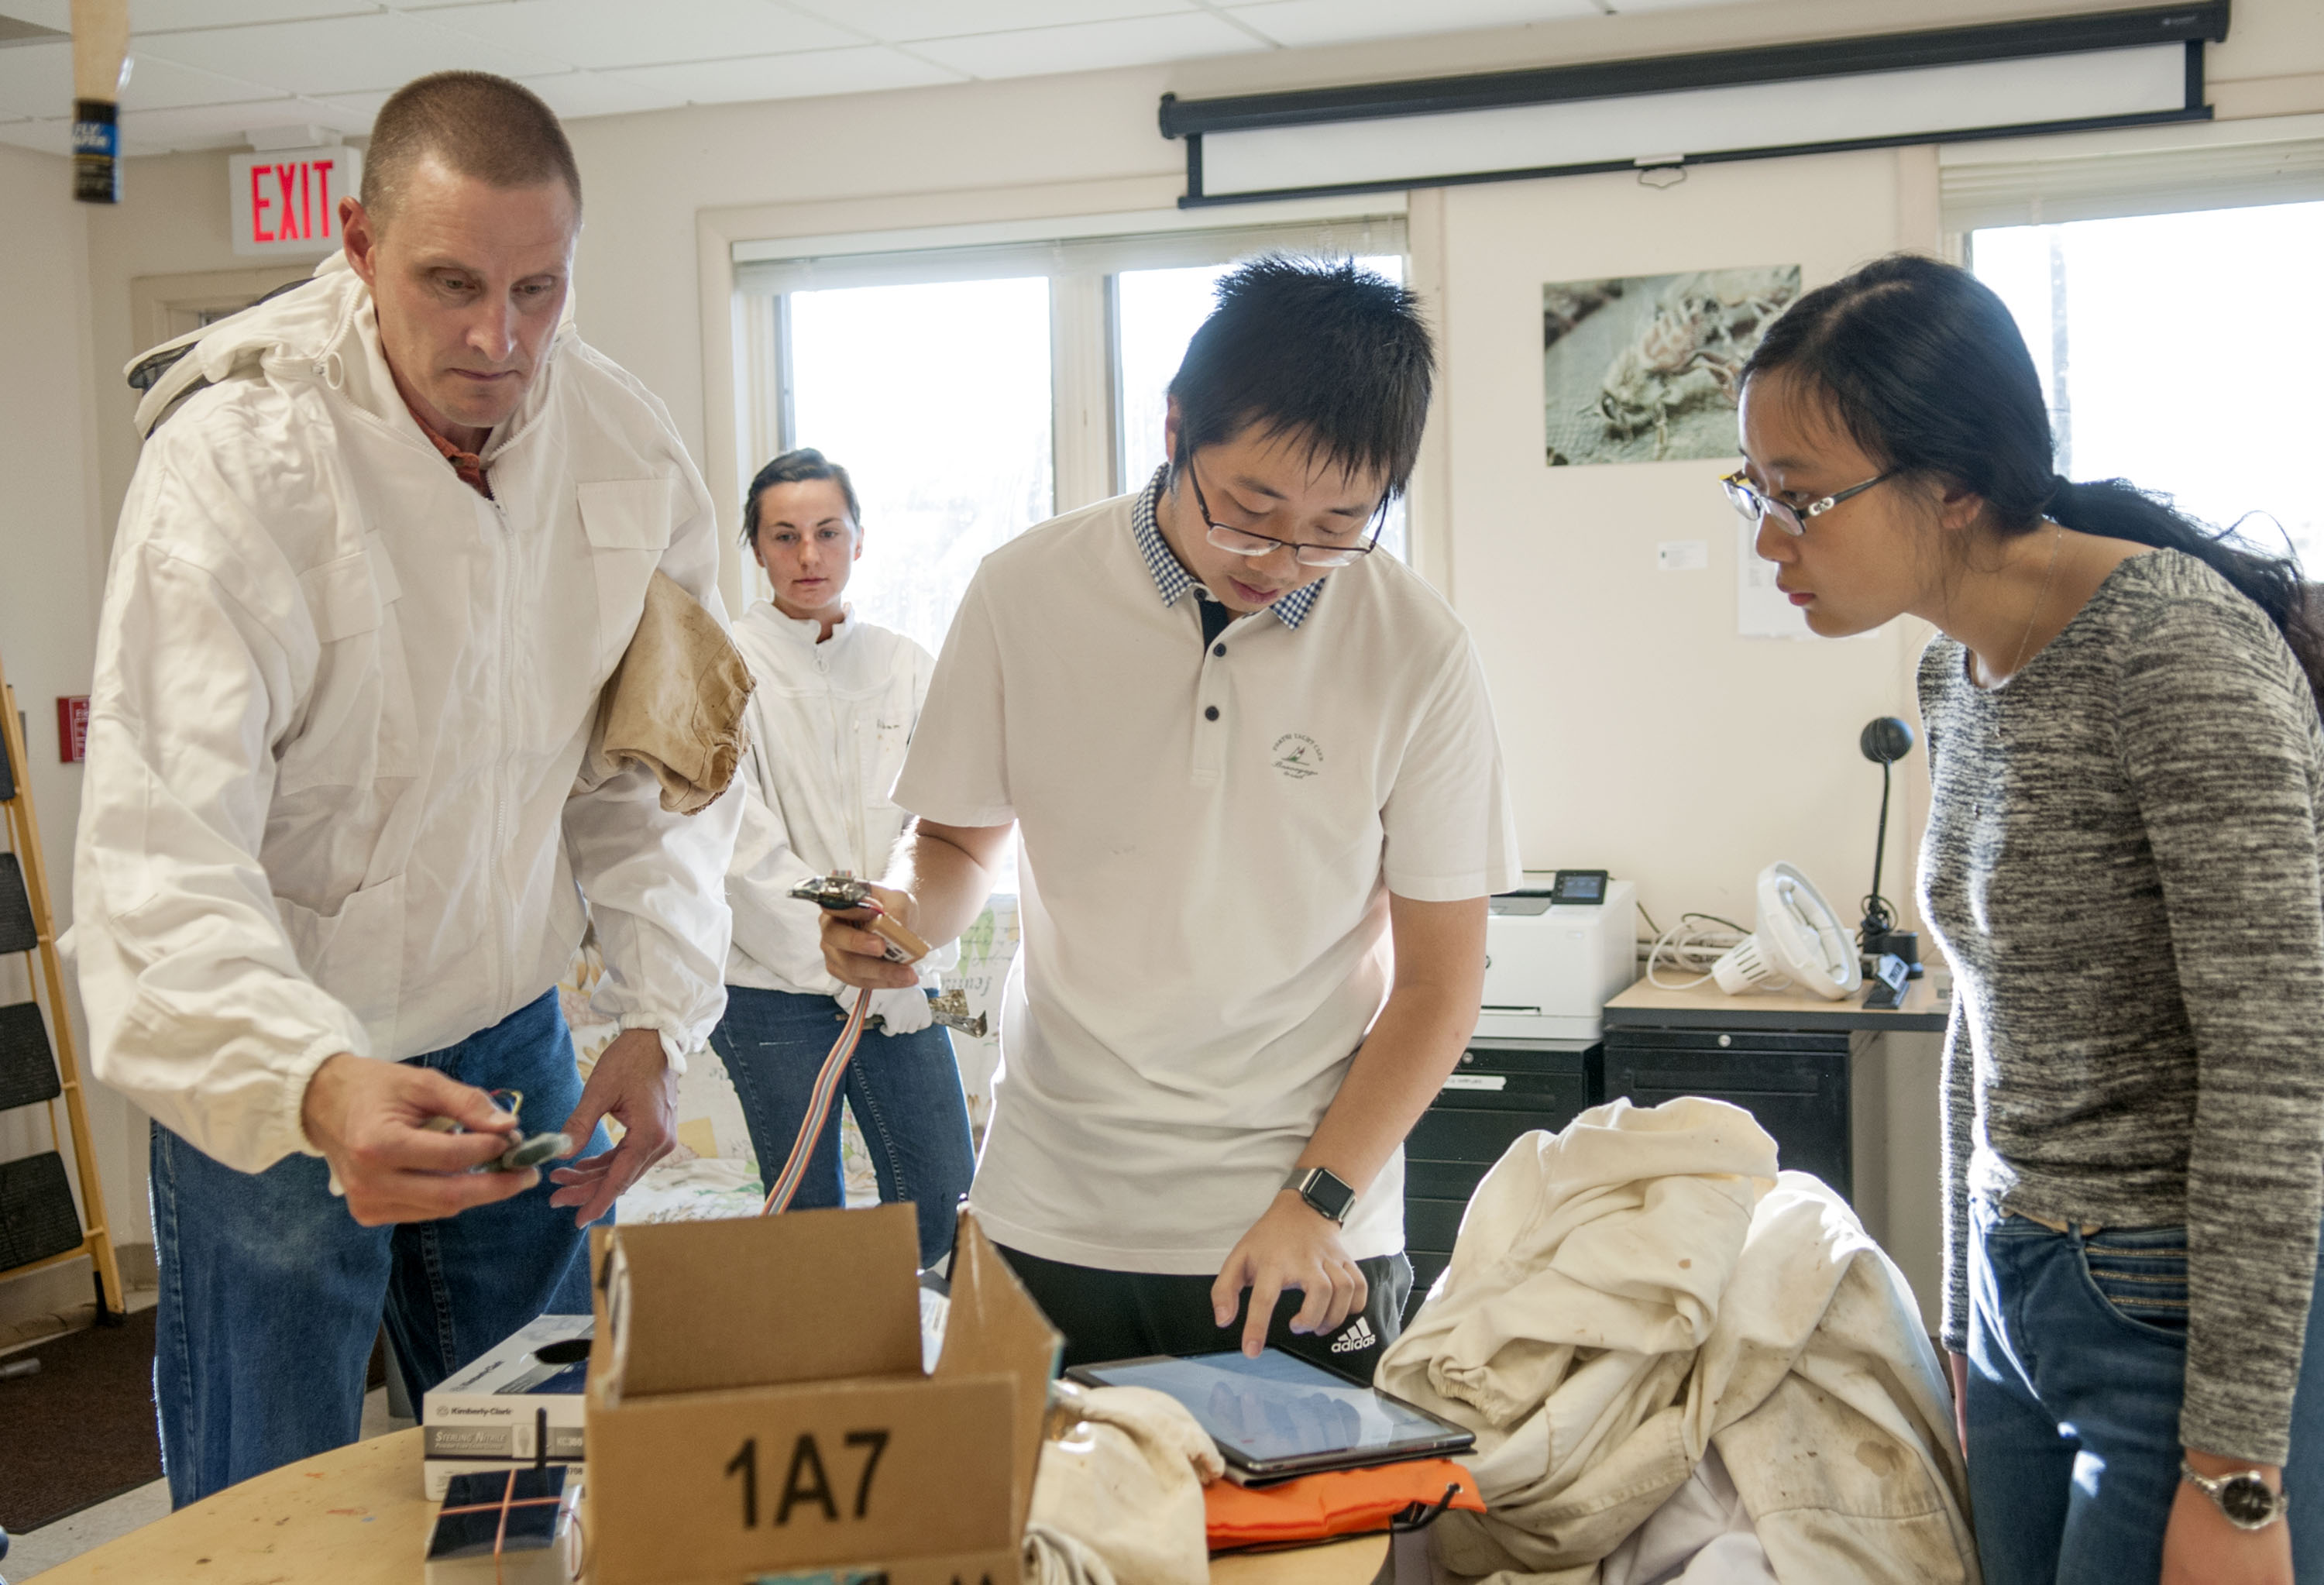 Jimmy He checks the signal using a makeshift application to monitor a data stream, as WaggleNet team members, Chris Schmitz and Xiaolin Wu help to prepare deployment of the wireless monitoring system at the Bee Research Facility in Urbana. Beekeeper Ali Sankey (background left) is the lab manager and the team's first client.